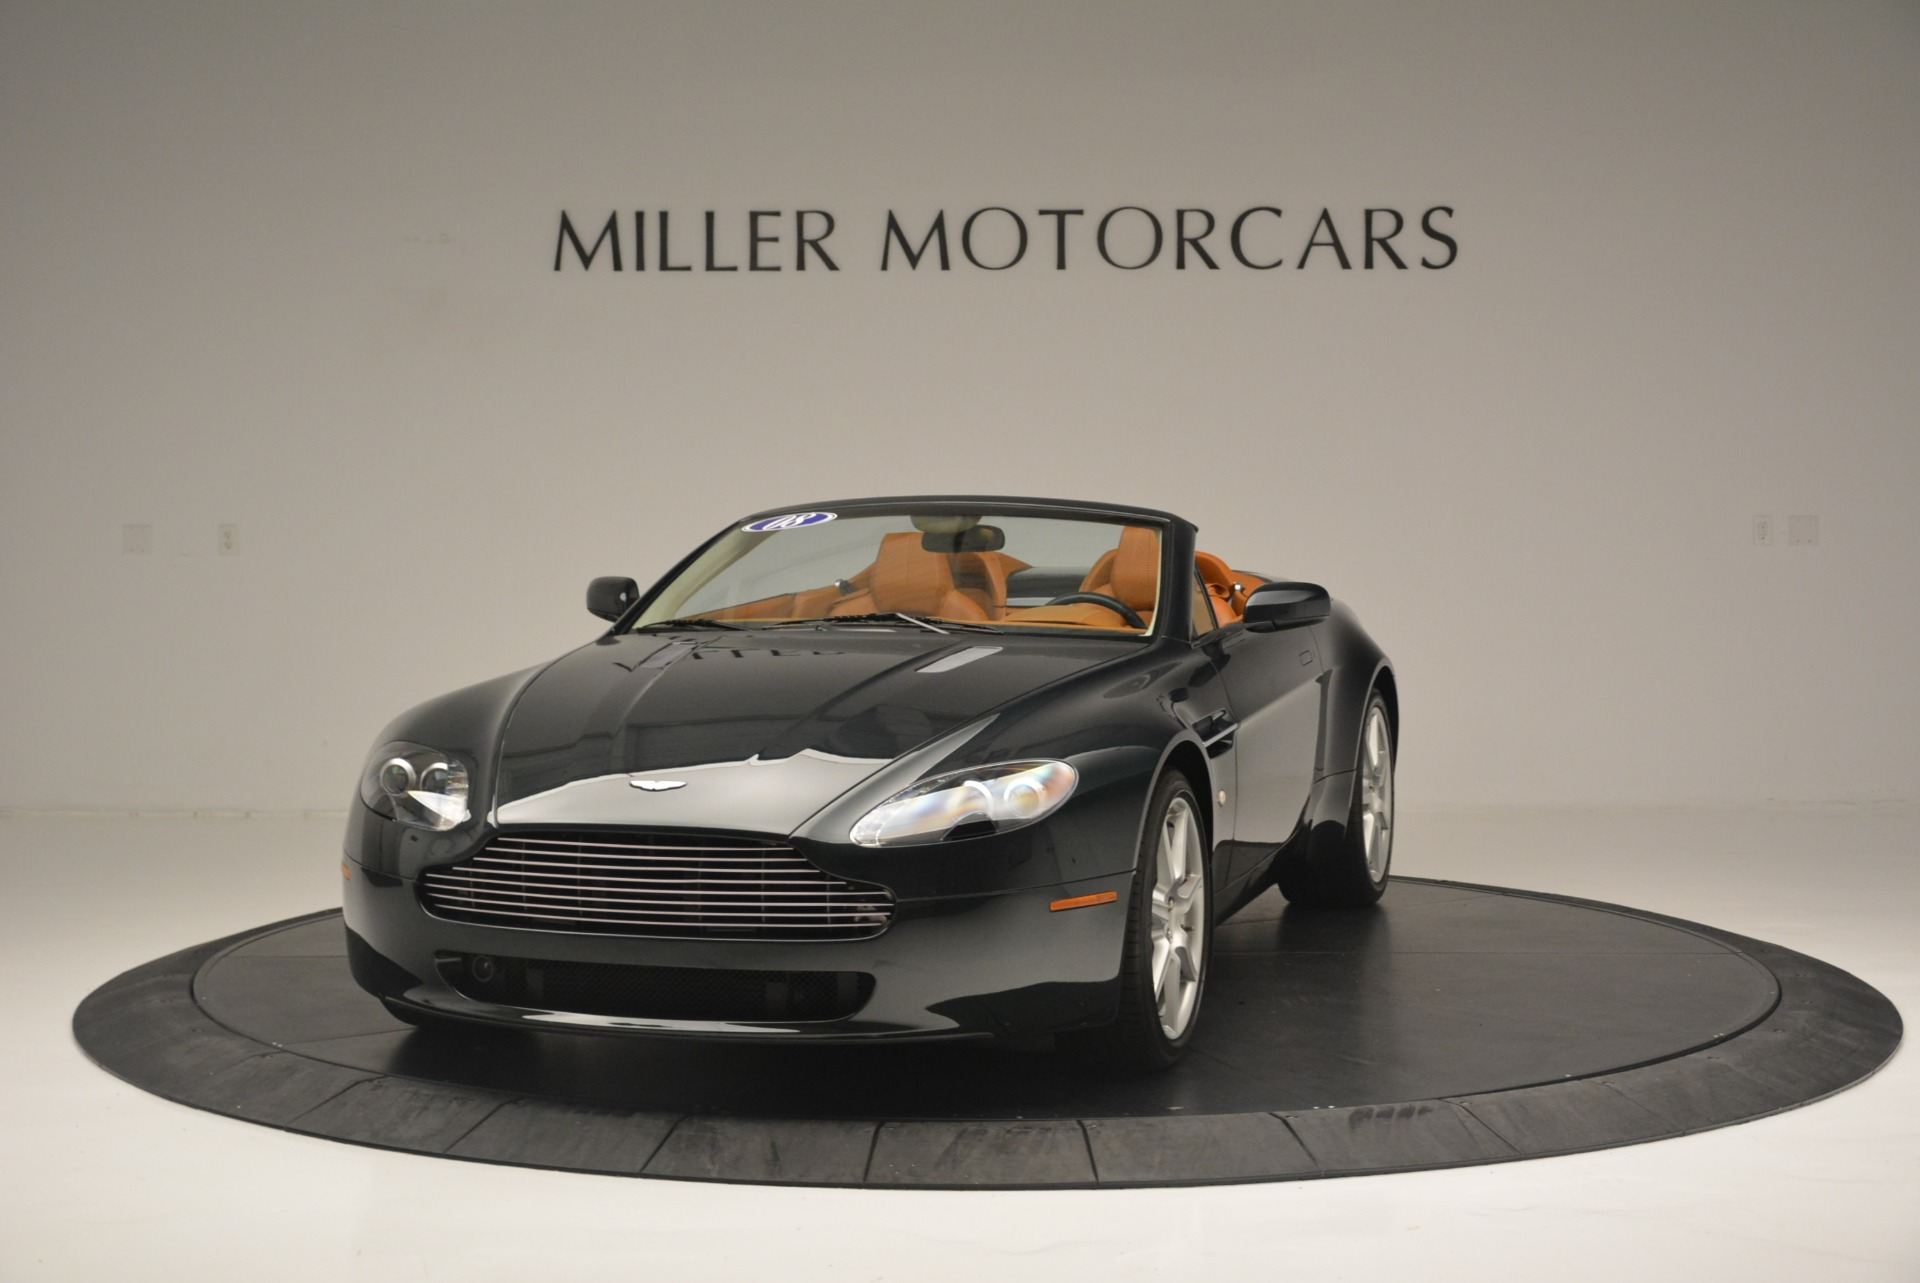 Used 2008 Aston Martin V8 Vantage Roadster for sale Sold at Bentley Greenwich in Greenwich CT 06830 1